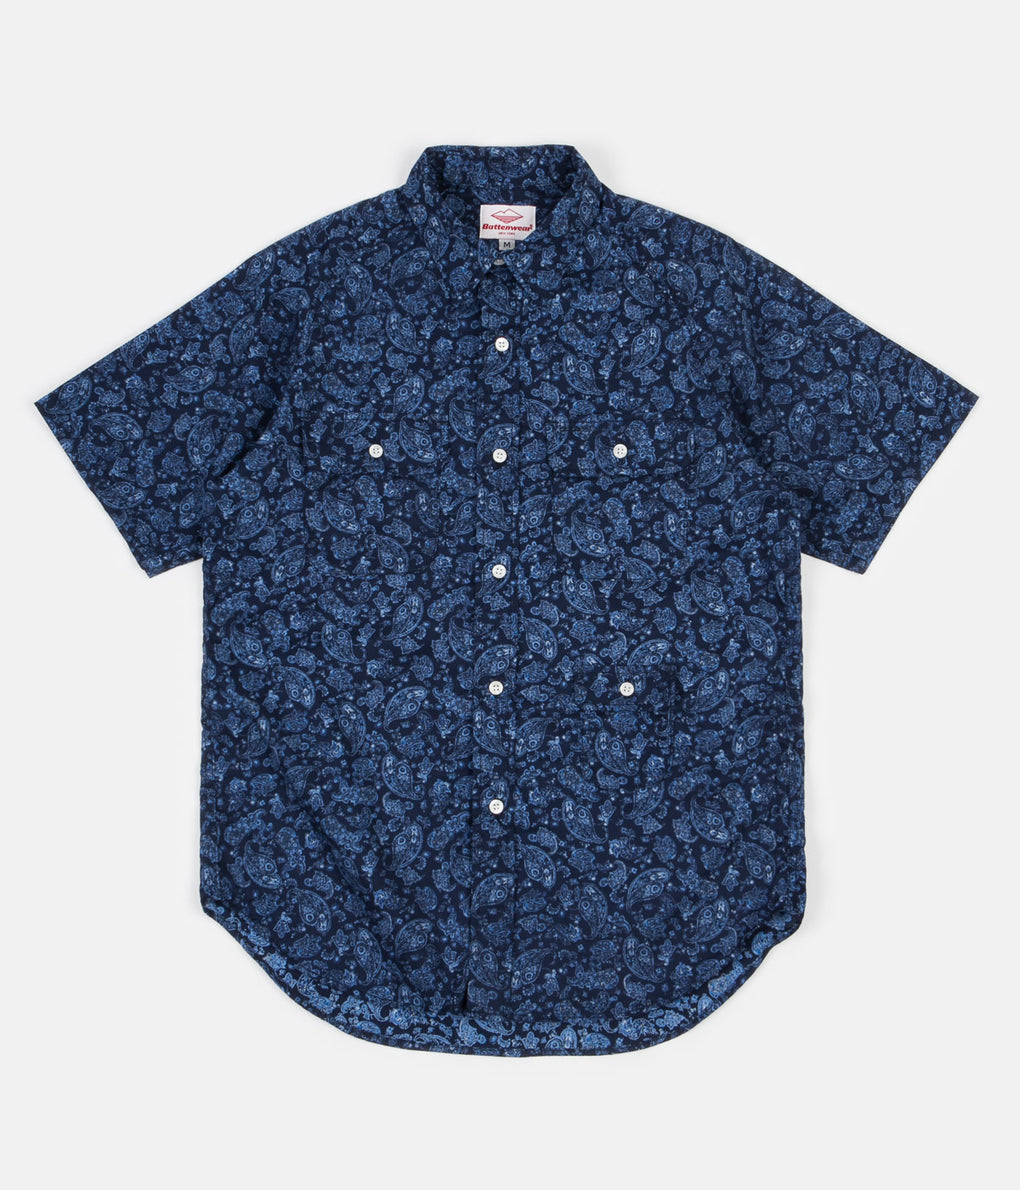 Battenwear Short Sleeve Camp Shirt - Navy Paisley